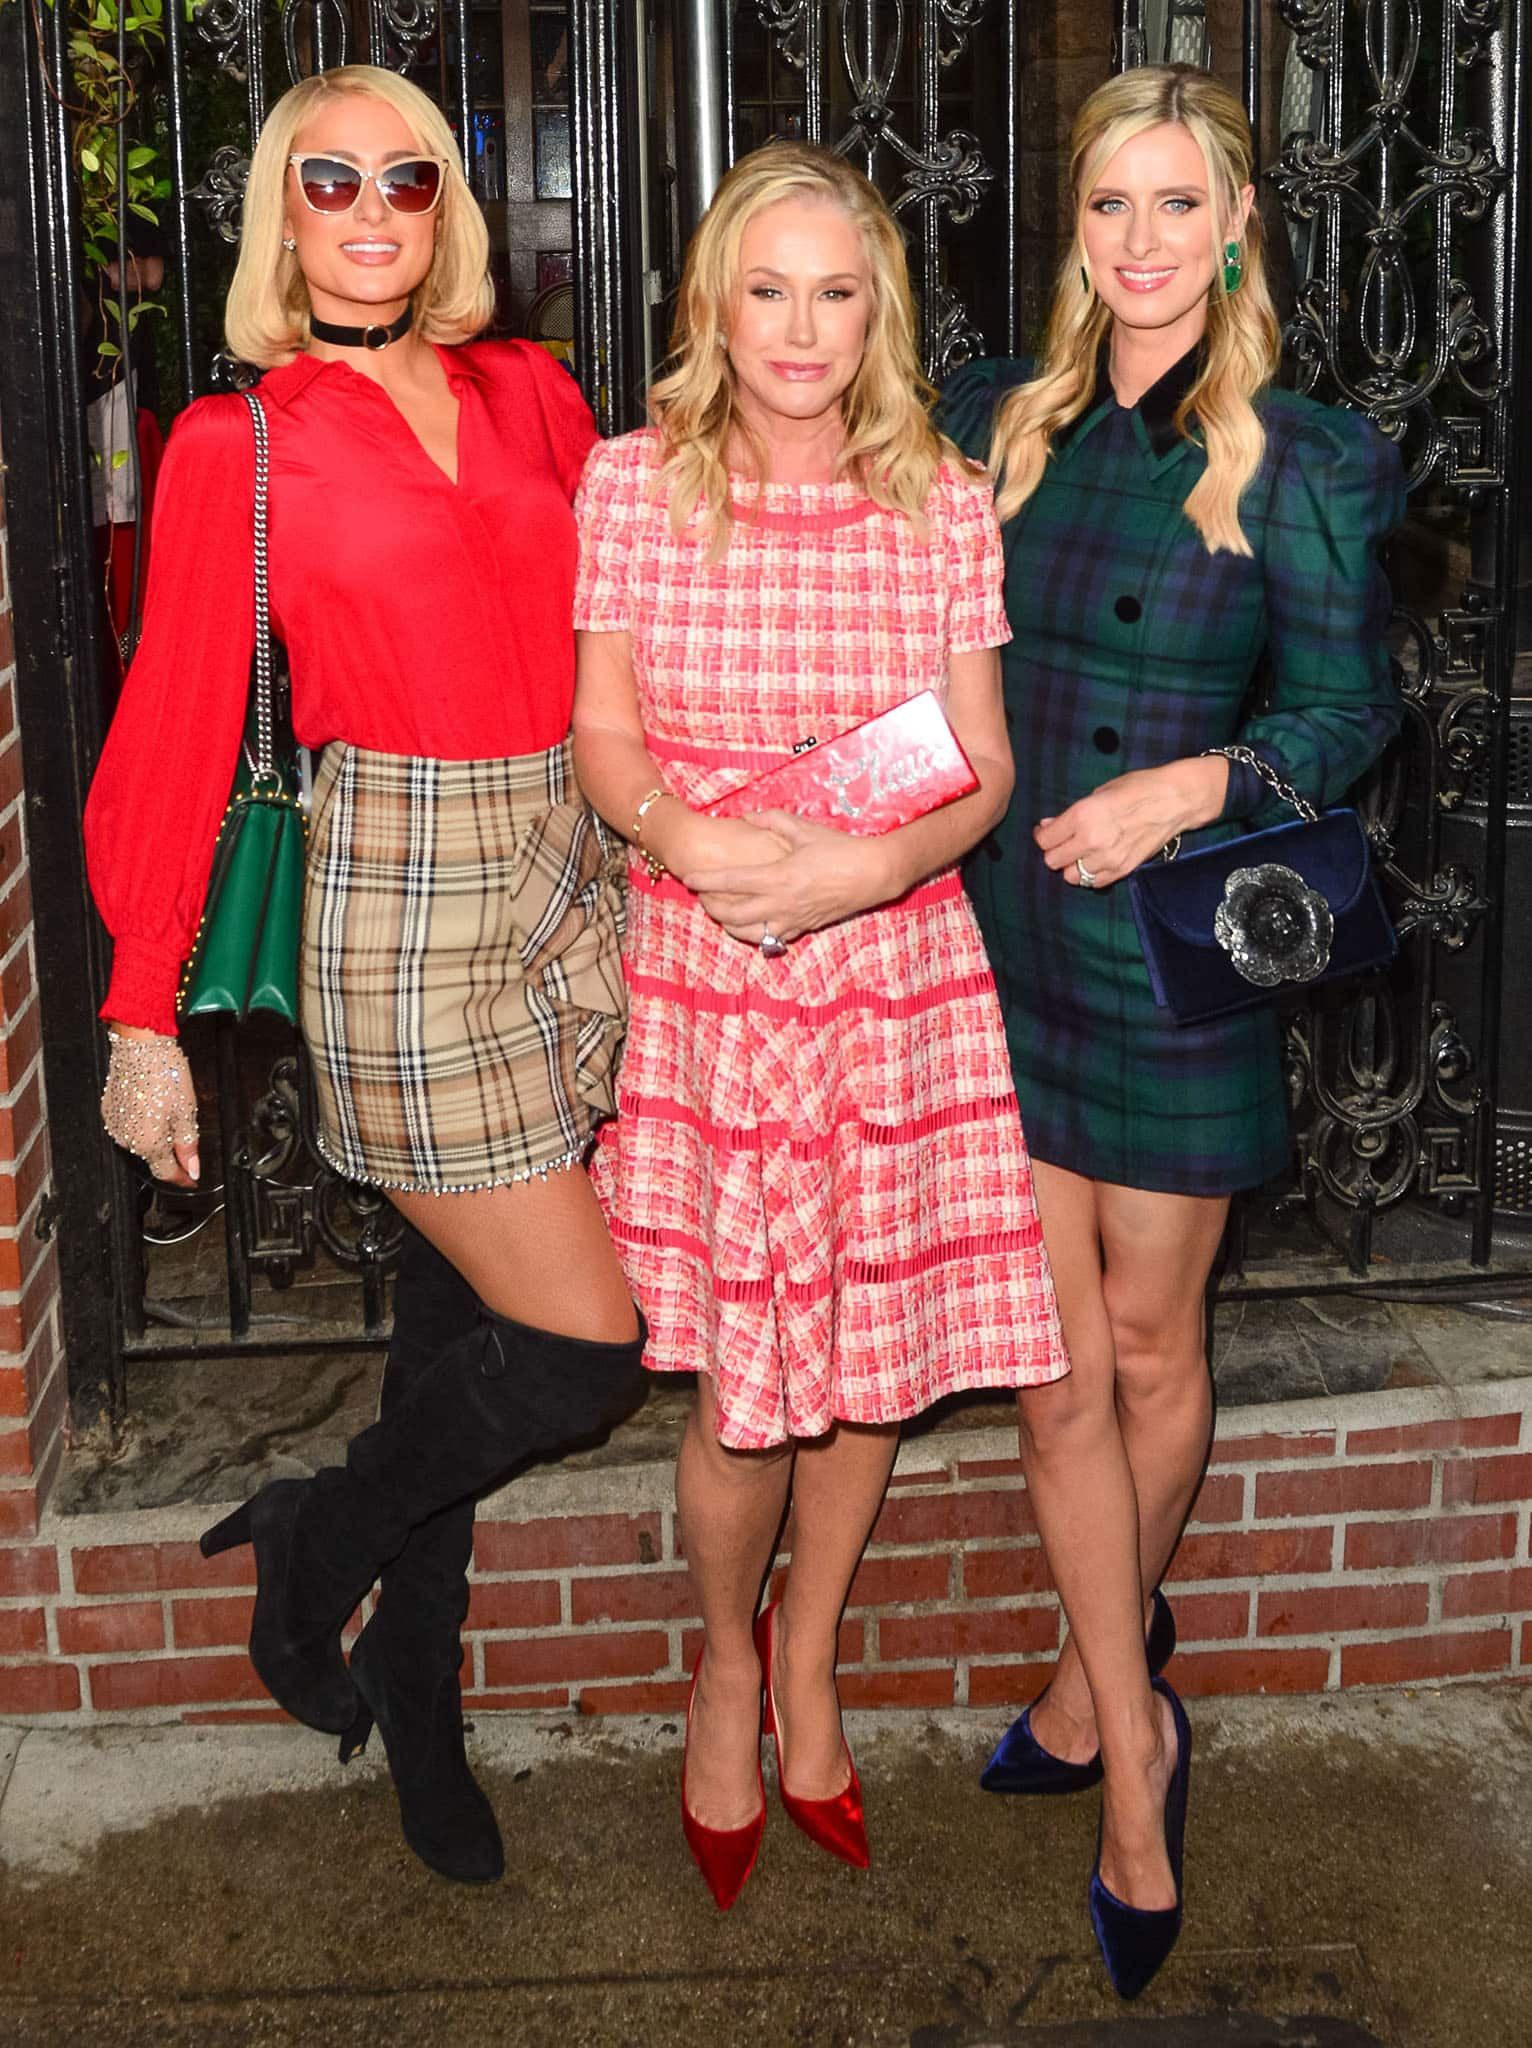 """Paris Hilton, mom Kathy, and sister Nicky Hilton in plaid outfits co-host the 16th annual """"Christmas in September"""" Toy Drive for Children's Hospital LA"""